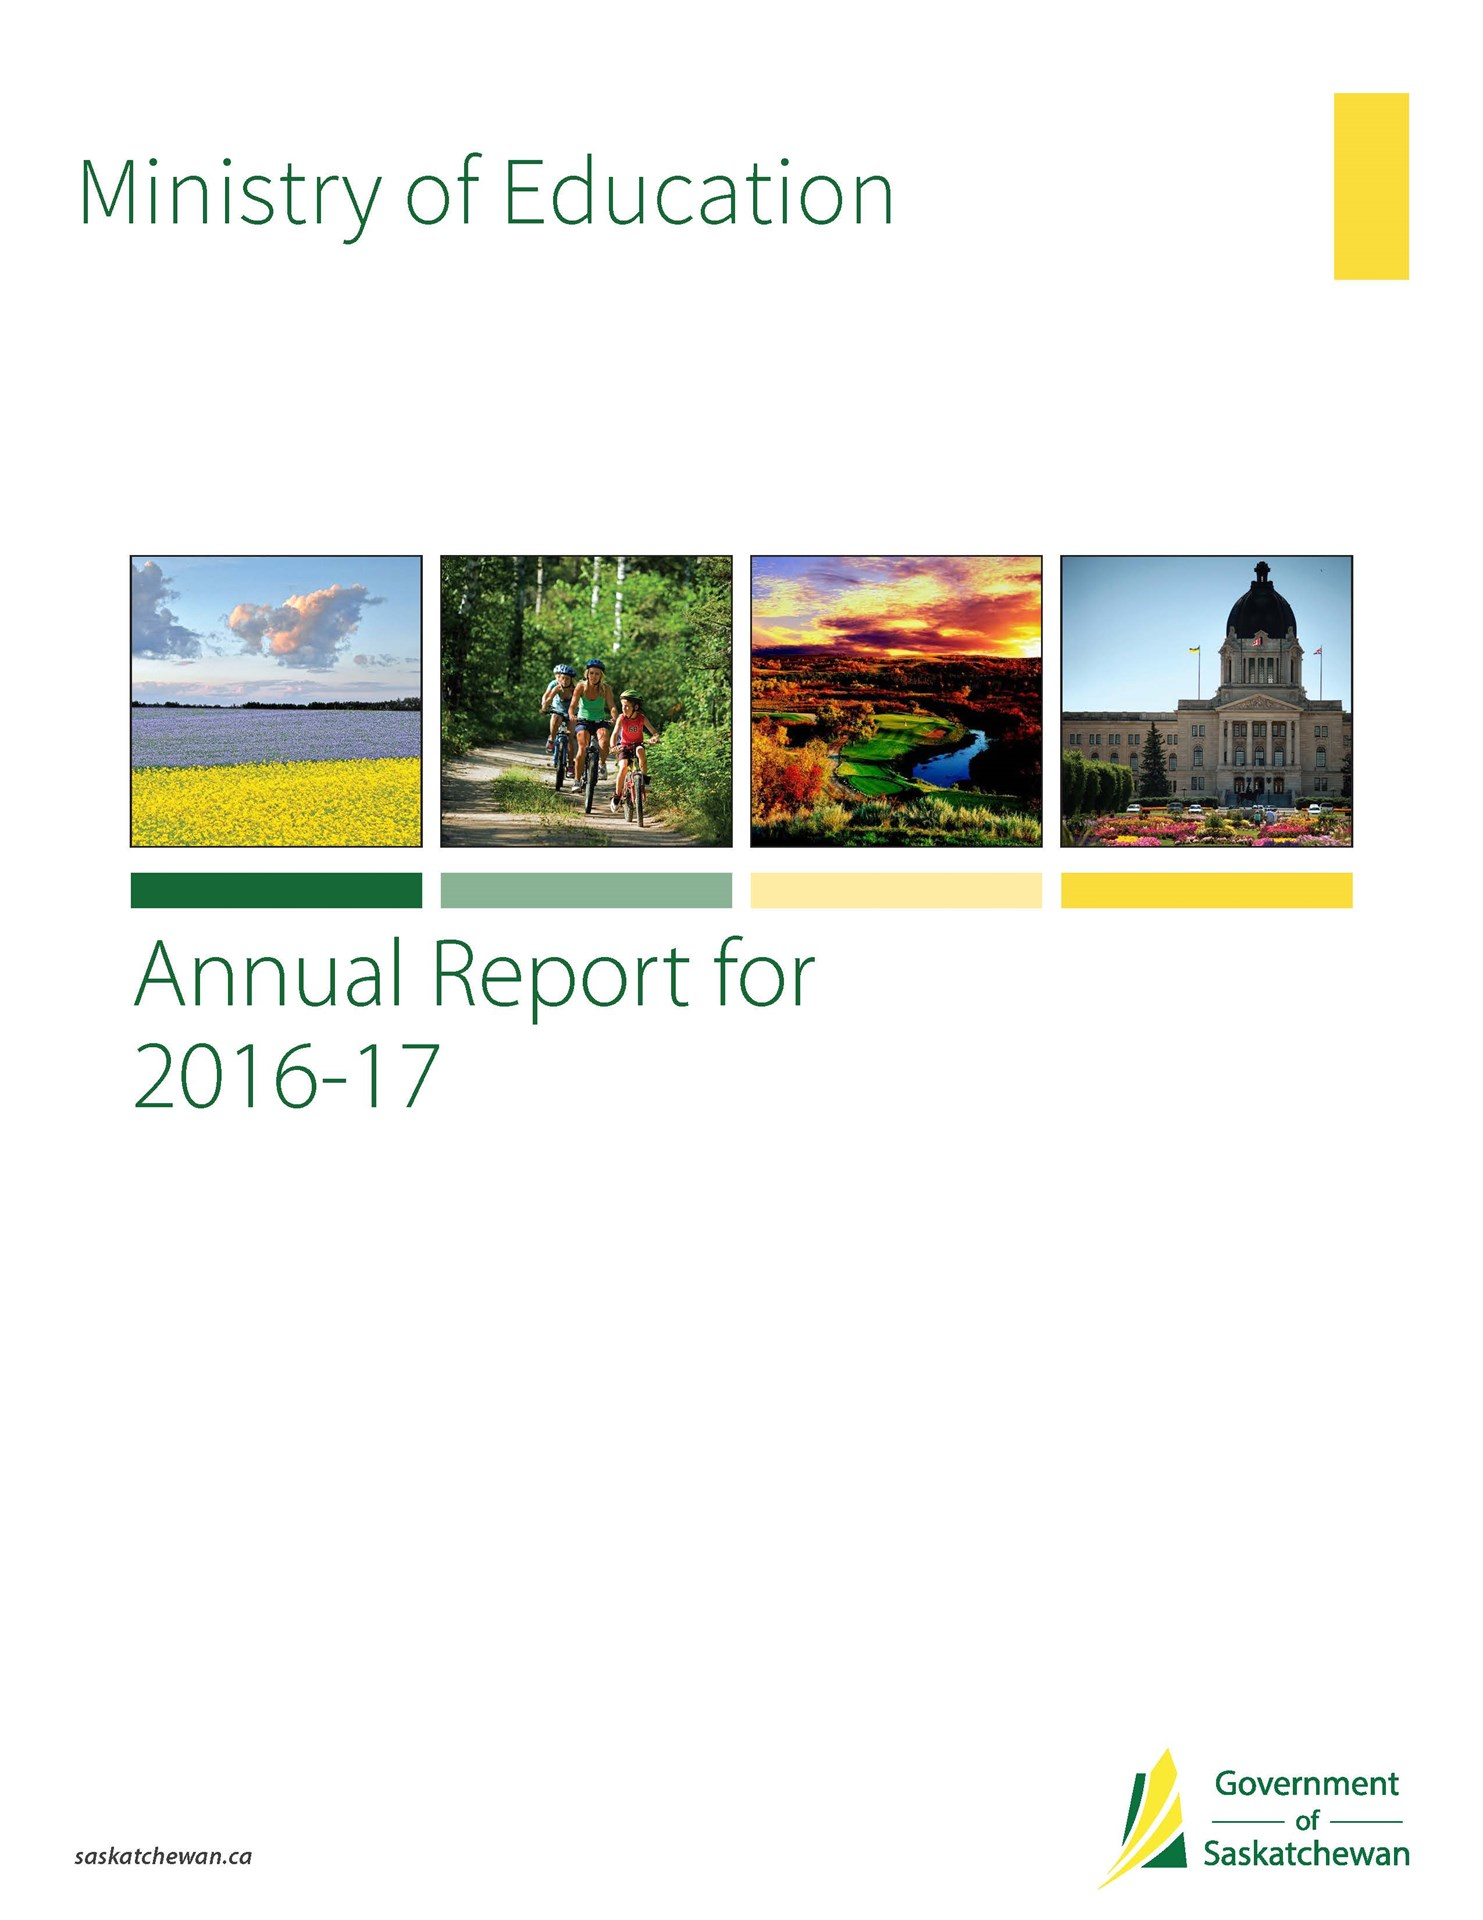 Ministry%20of%20Education%20Annual%20Report%20for%202016-17_Page_01.jpg